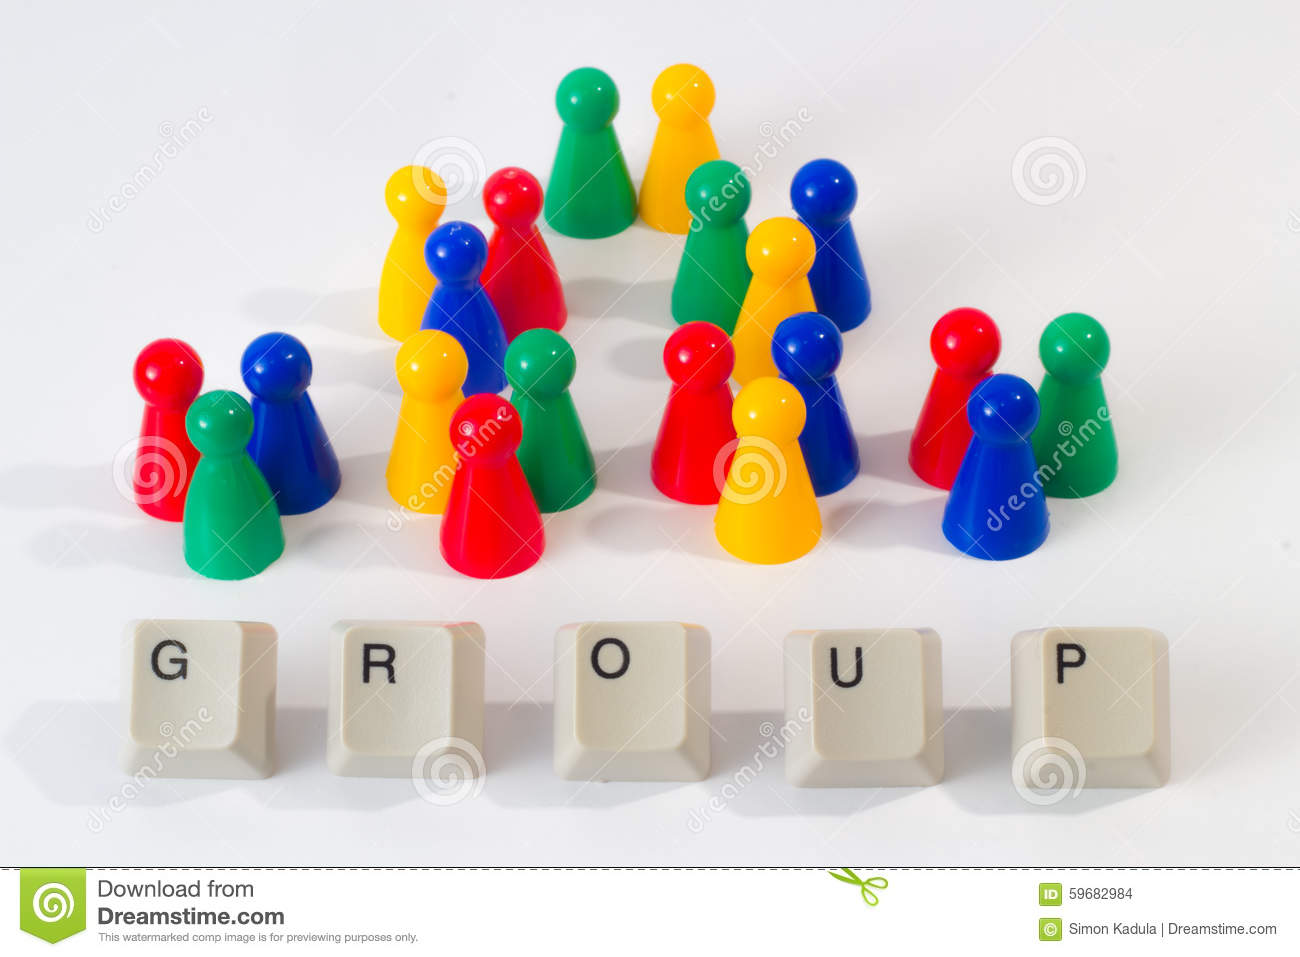 Group consists of seven smaller groups